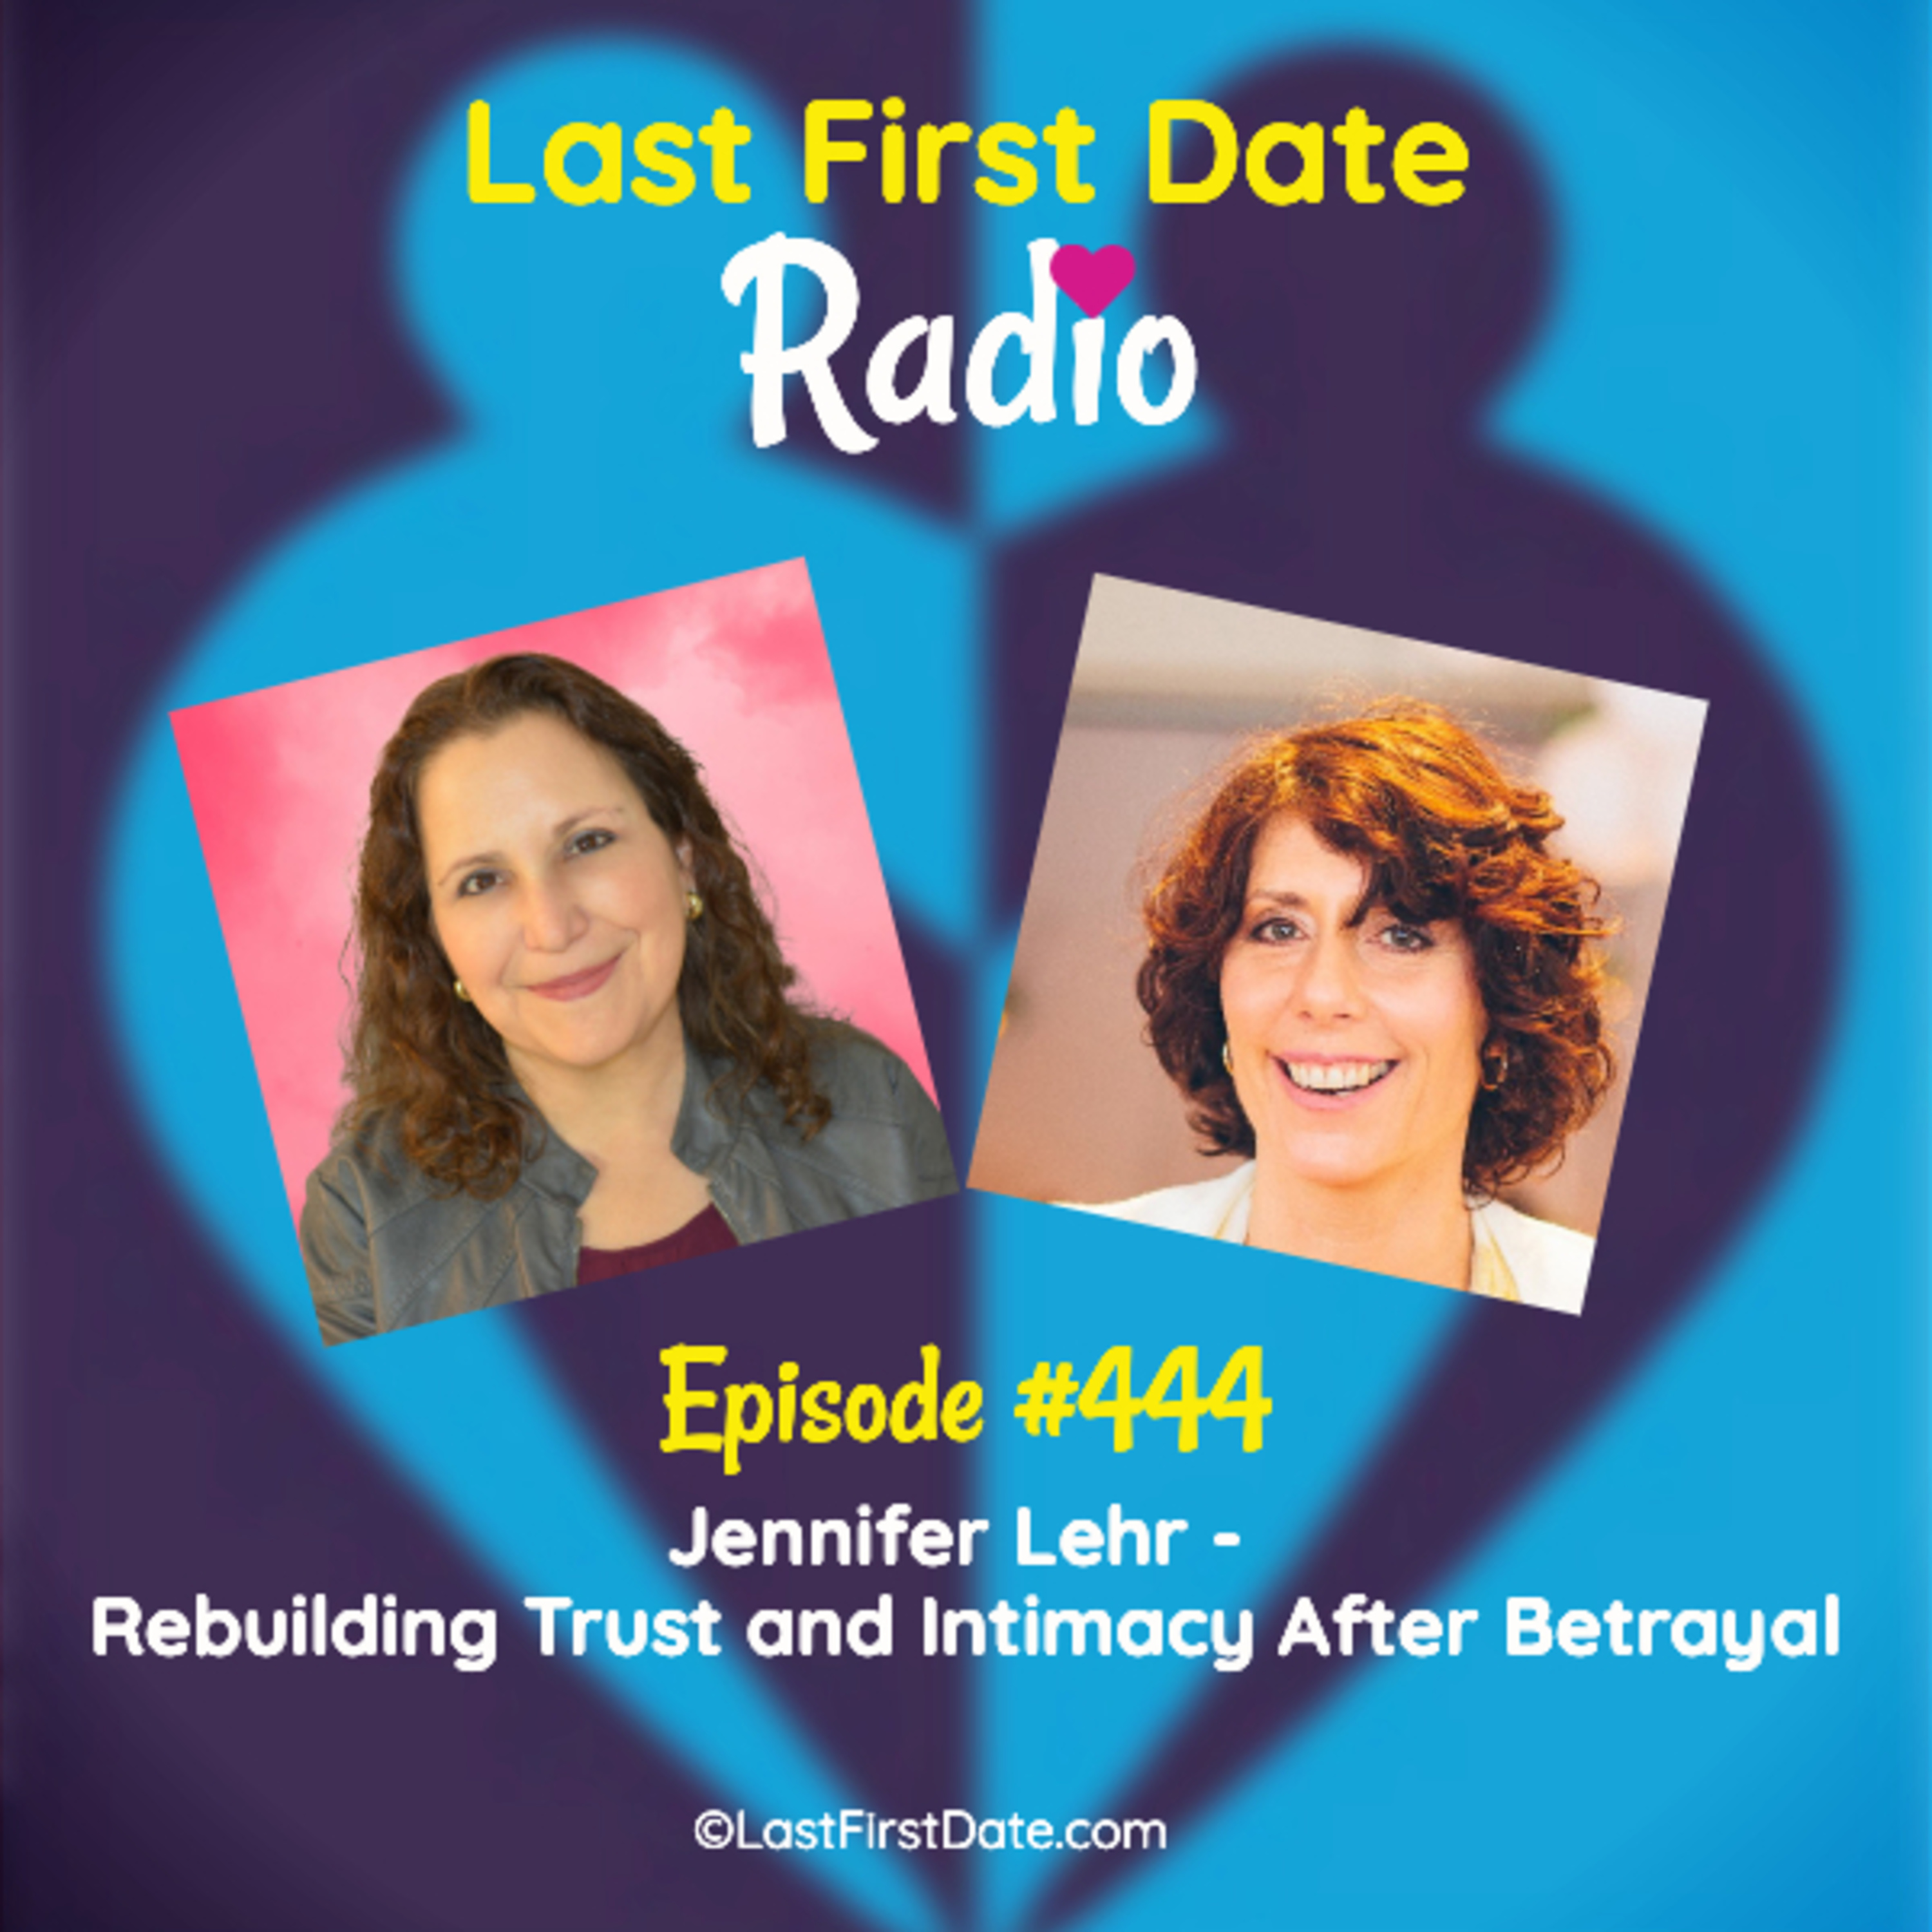 Last First Date Radio - EP 444: Jennifer Lehr - Rebuilding Trust and Intimacy After Betrayal